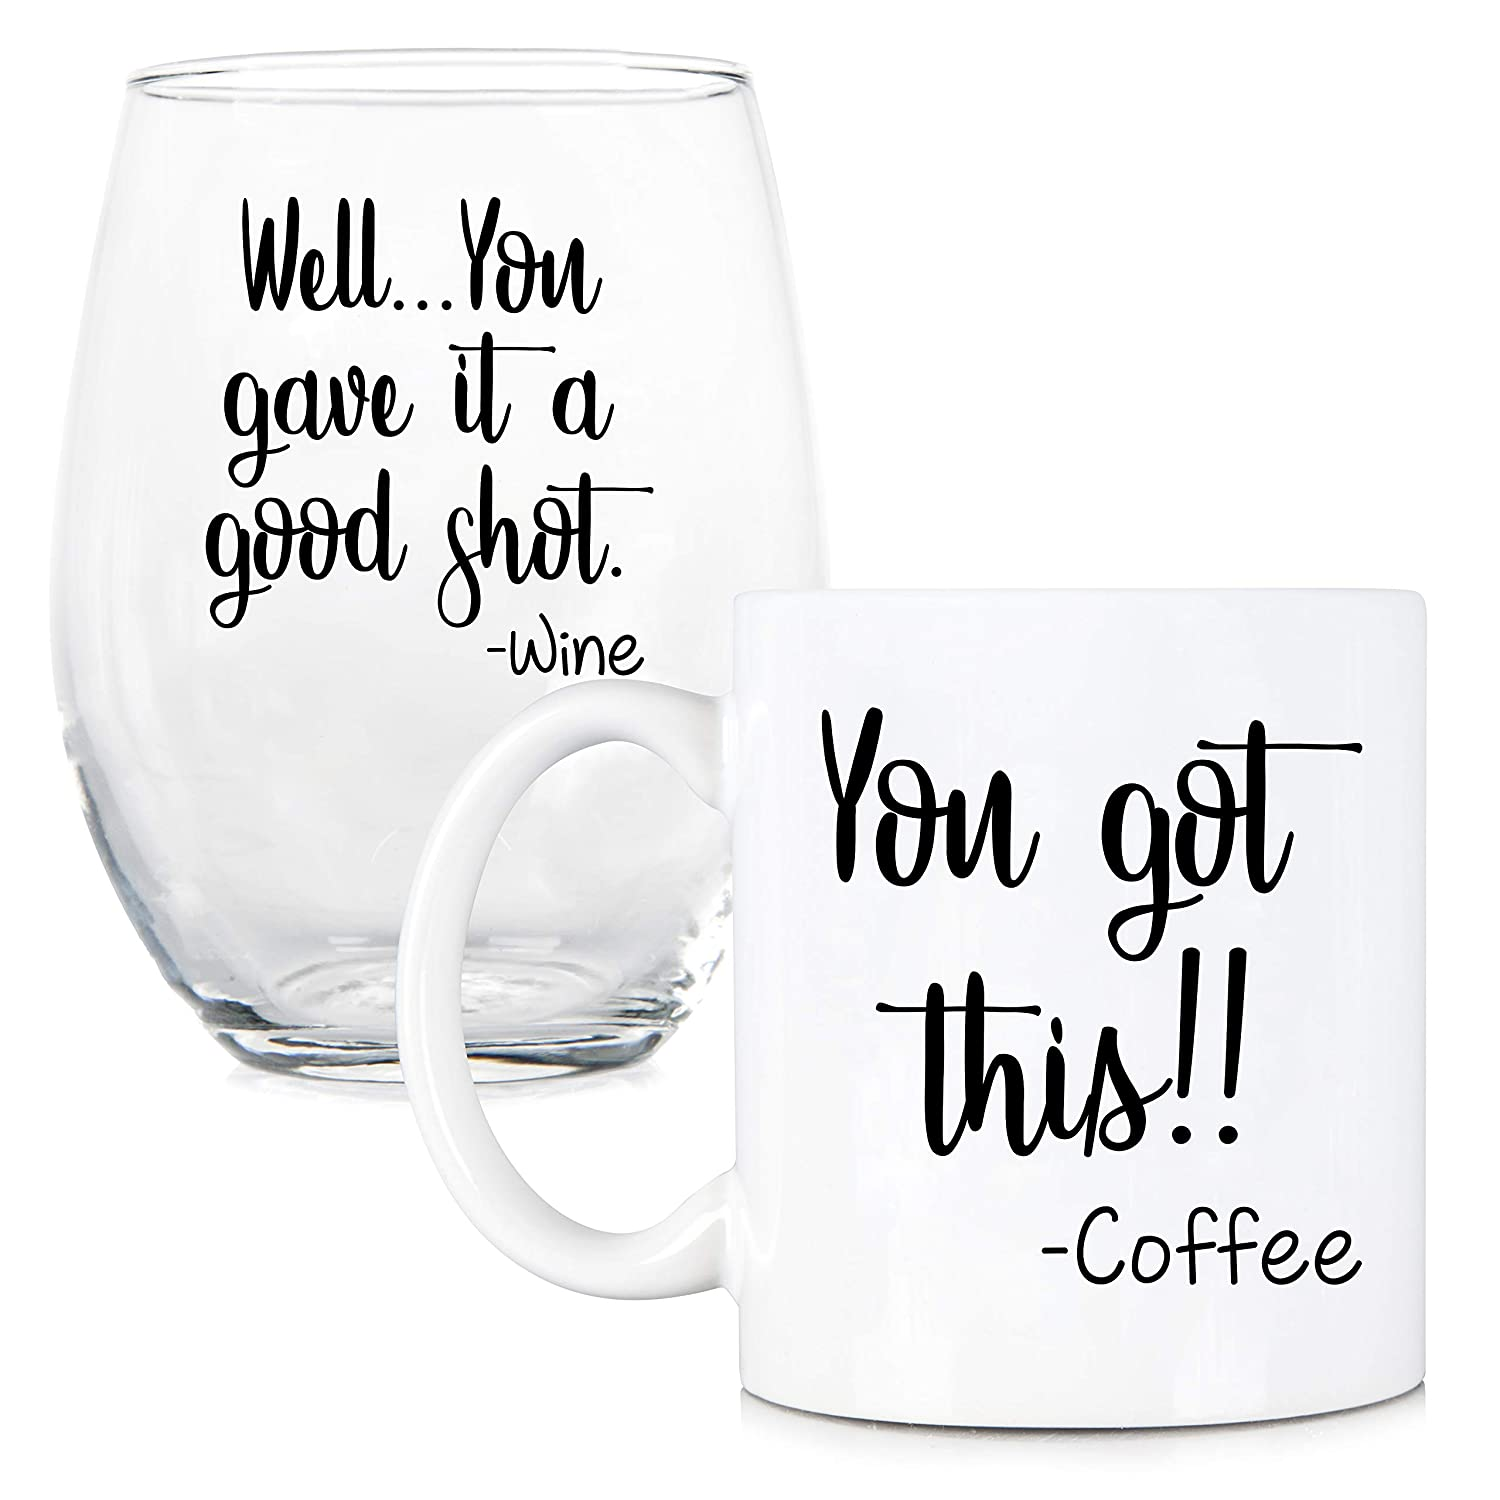 coffee mug and stemless wine glass set